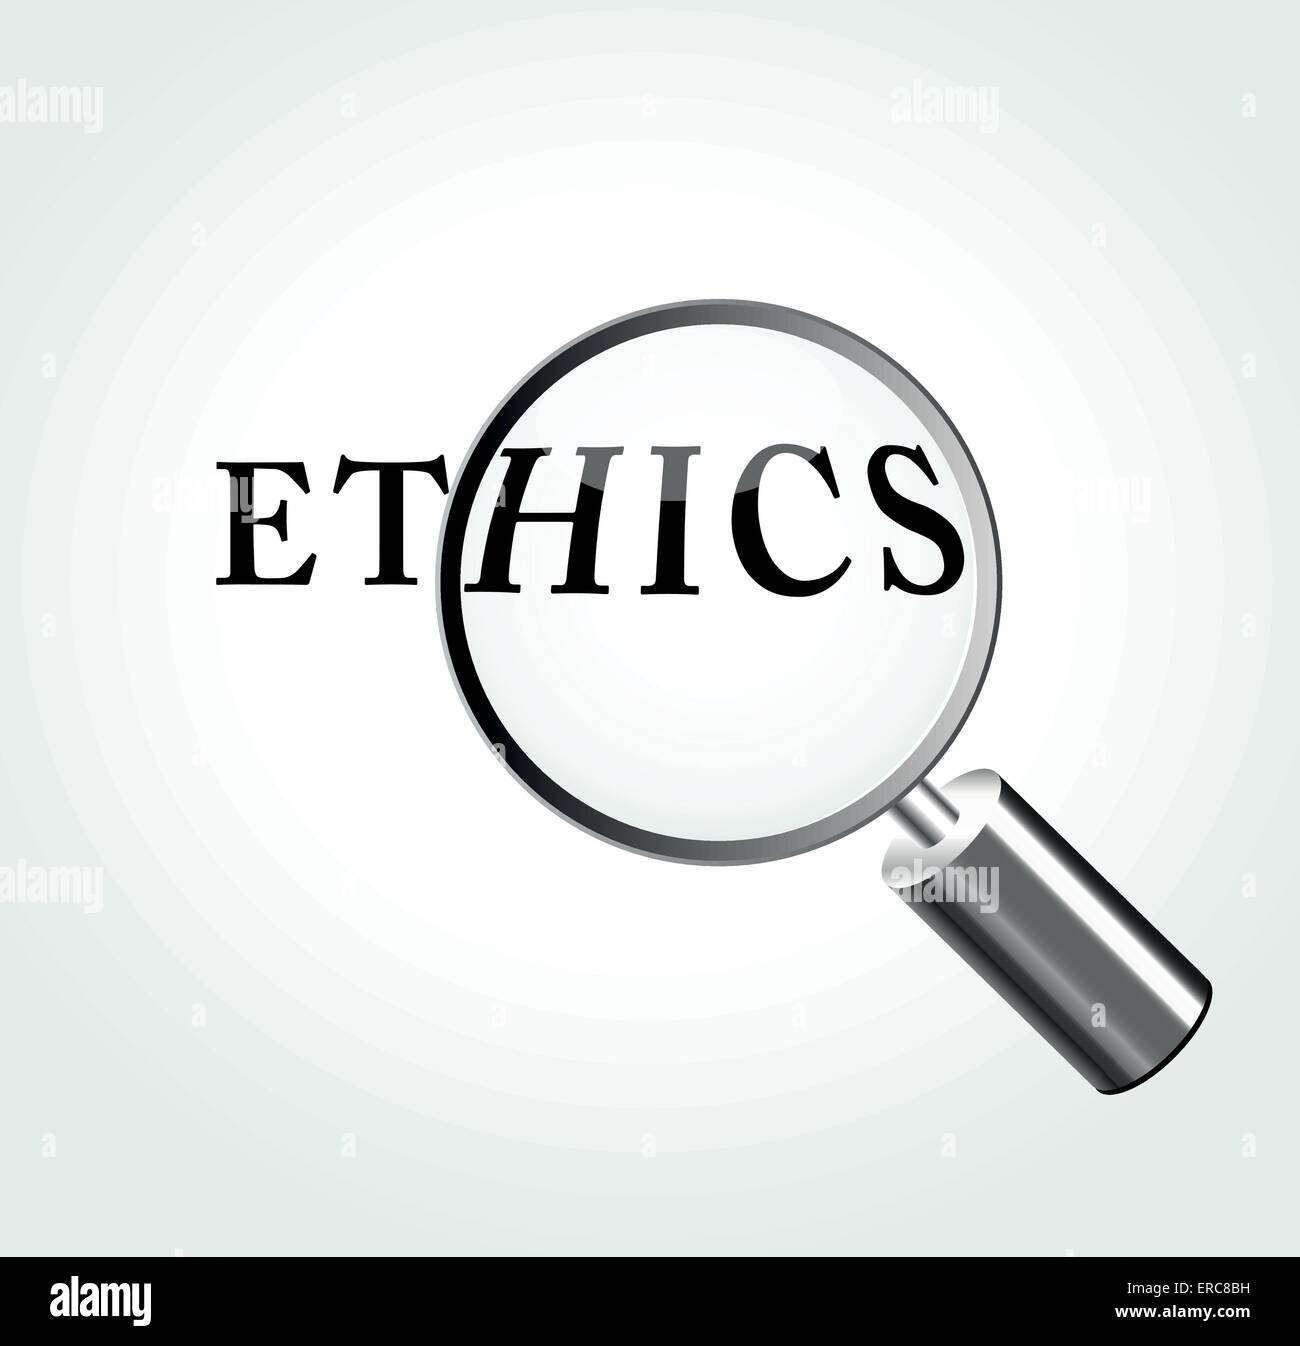 Vector illustration of ethics concept with magnifying - Stock Image